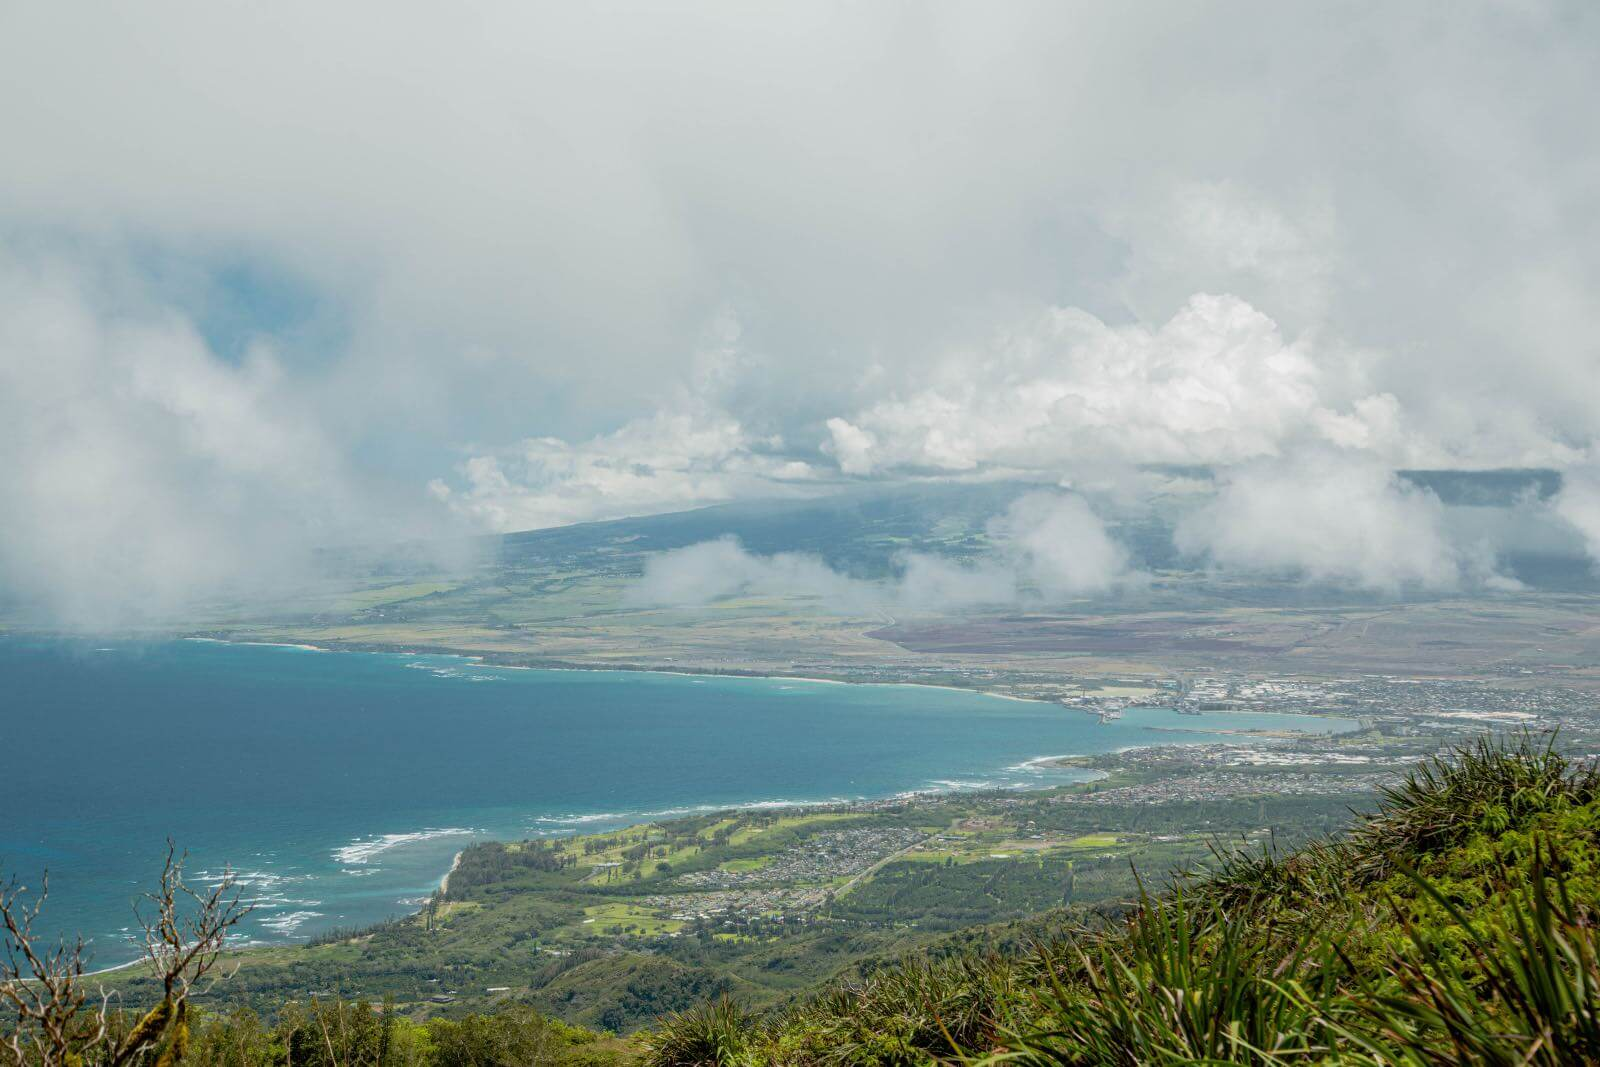 View of the Pacific Ocean on Maui